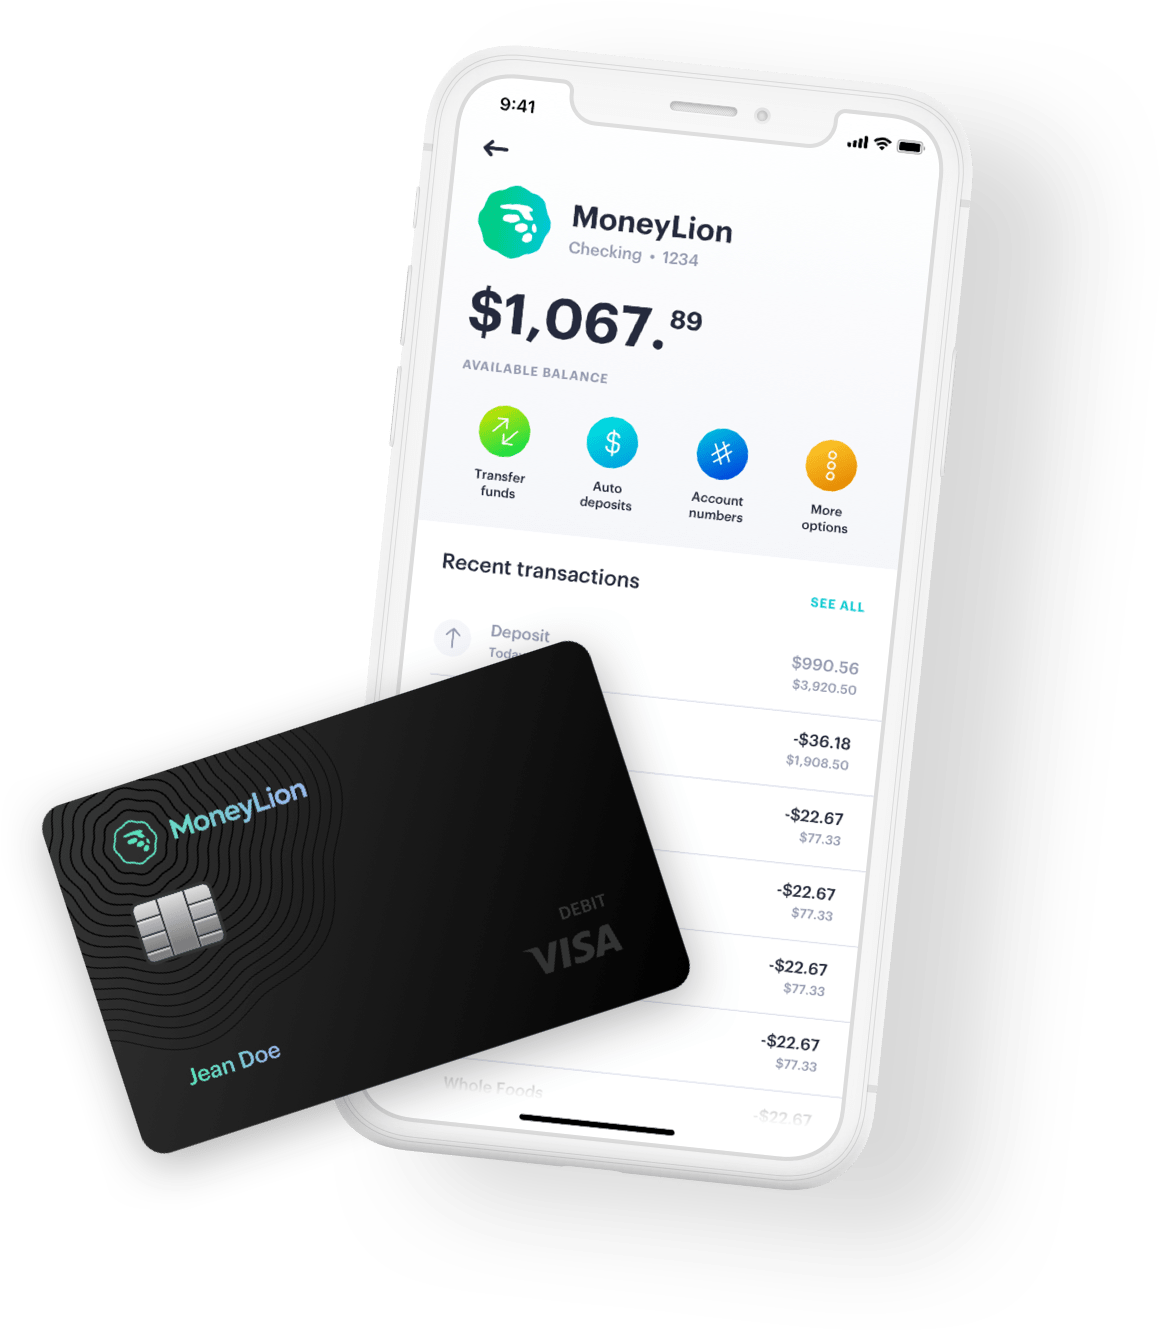 moneylion ui in iphone x with moneylion visa card on top